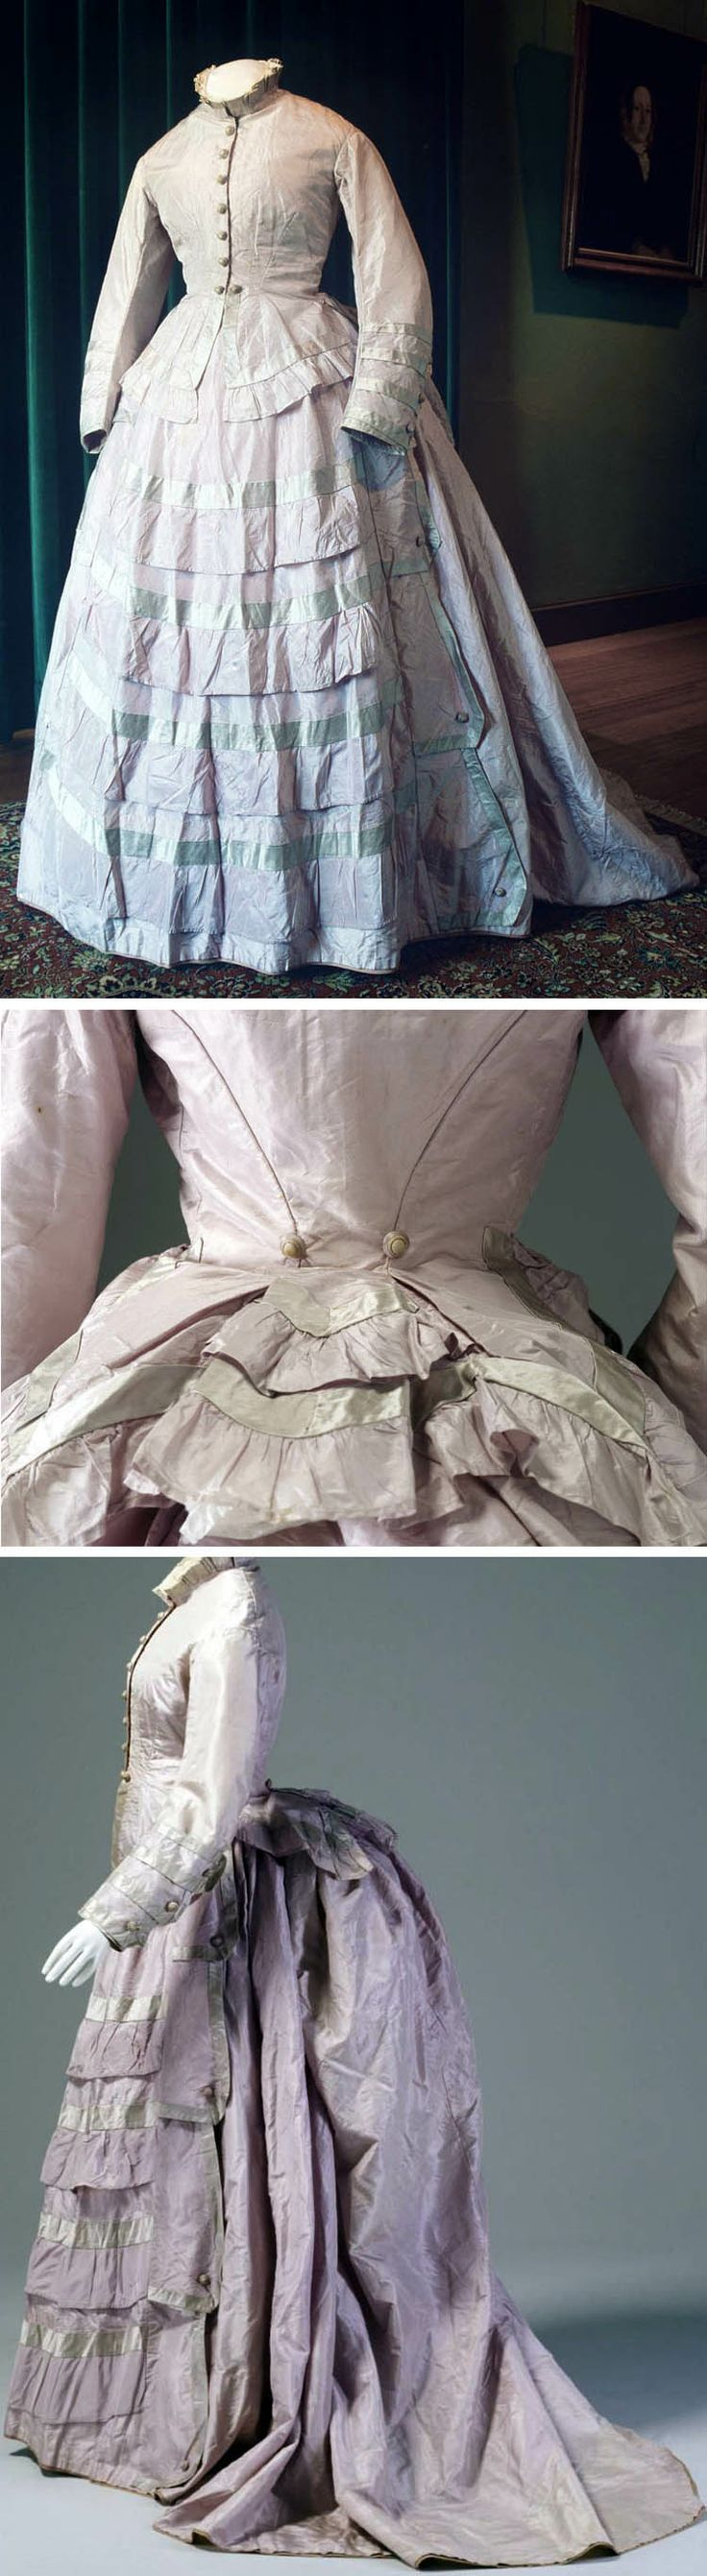 Afternoon dress, Australian, ca. 1876. Bodice and bustle skirt in mauve silk taffeta, trimmed with lengths of lavender satin. Powerhouse Museum